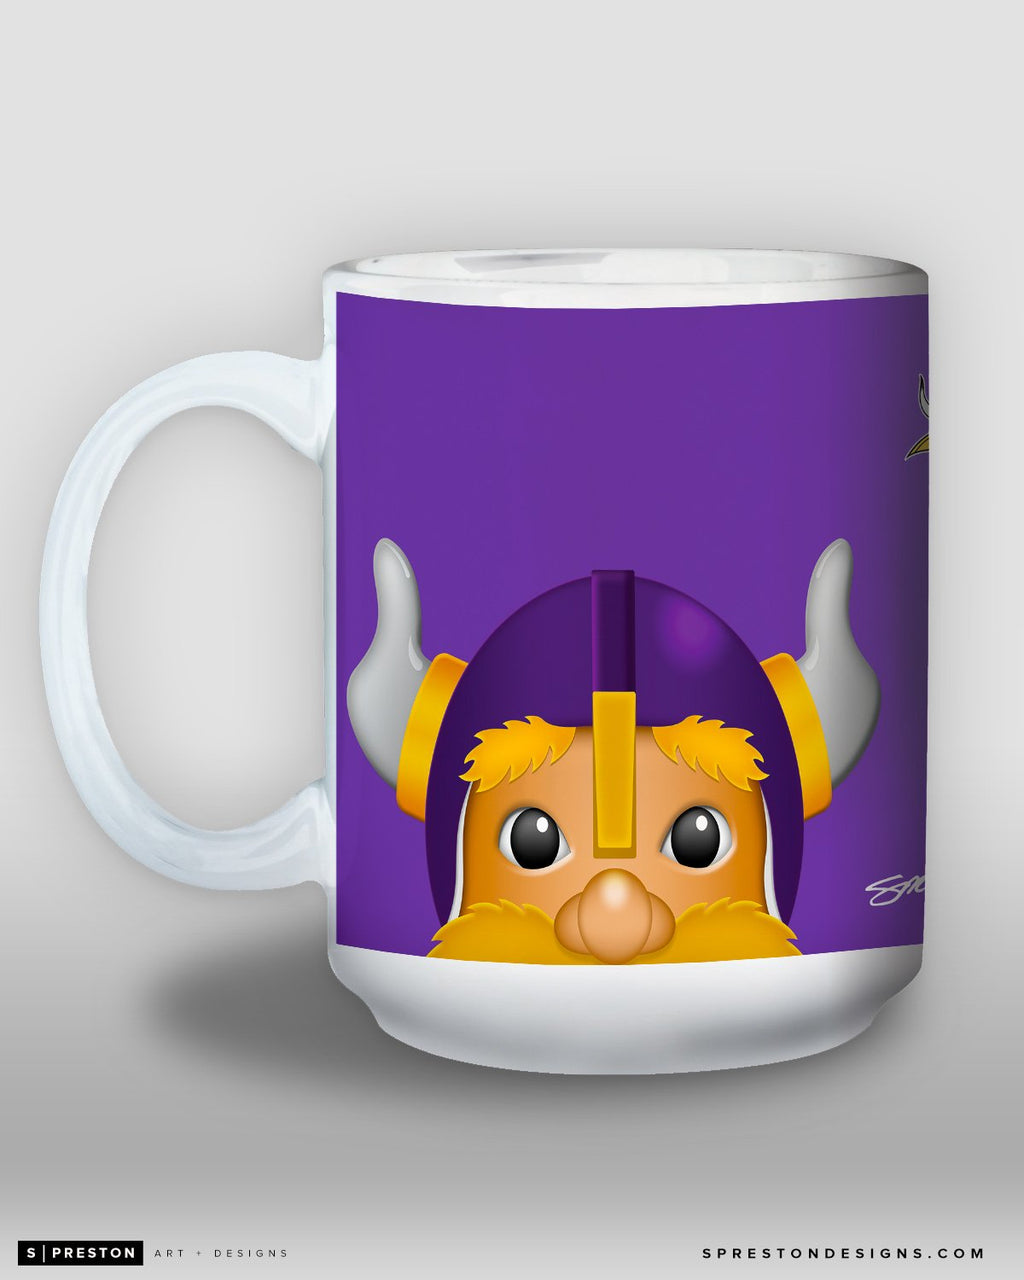 Minimalist Viktor The Viking Coffee Mug - NFL Licensed - Minnesota Vikings Mascot